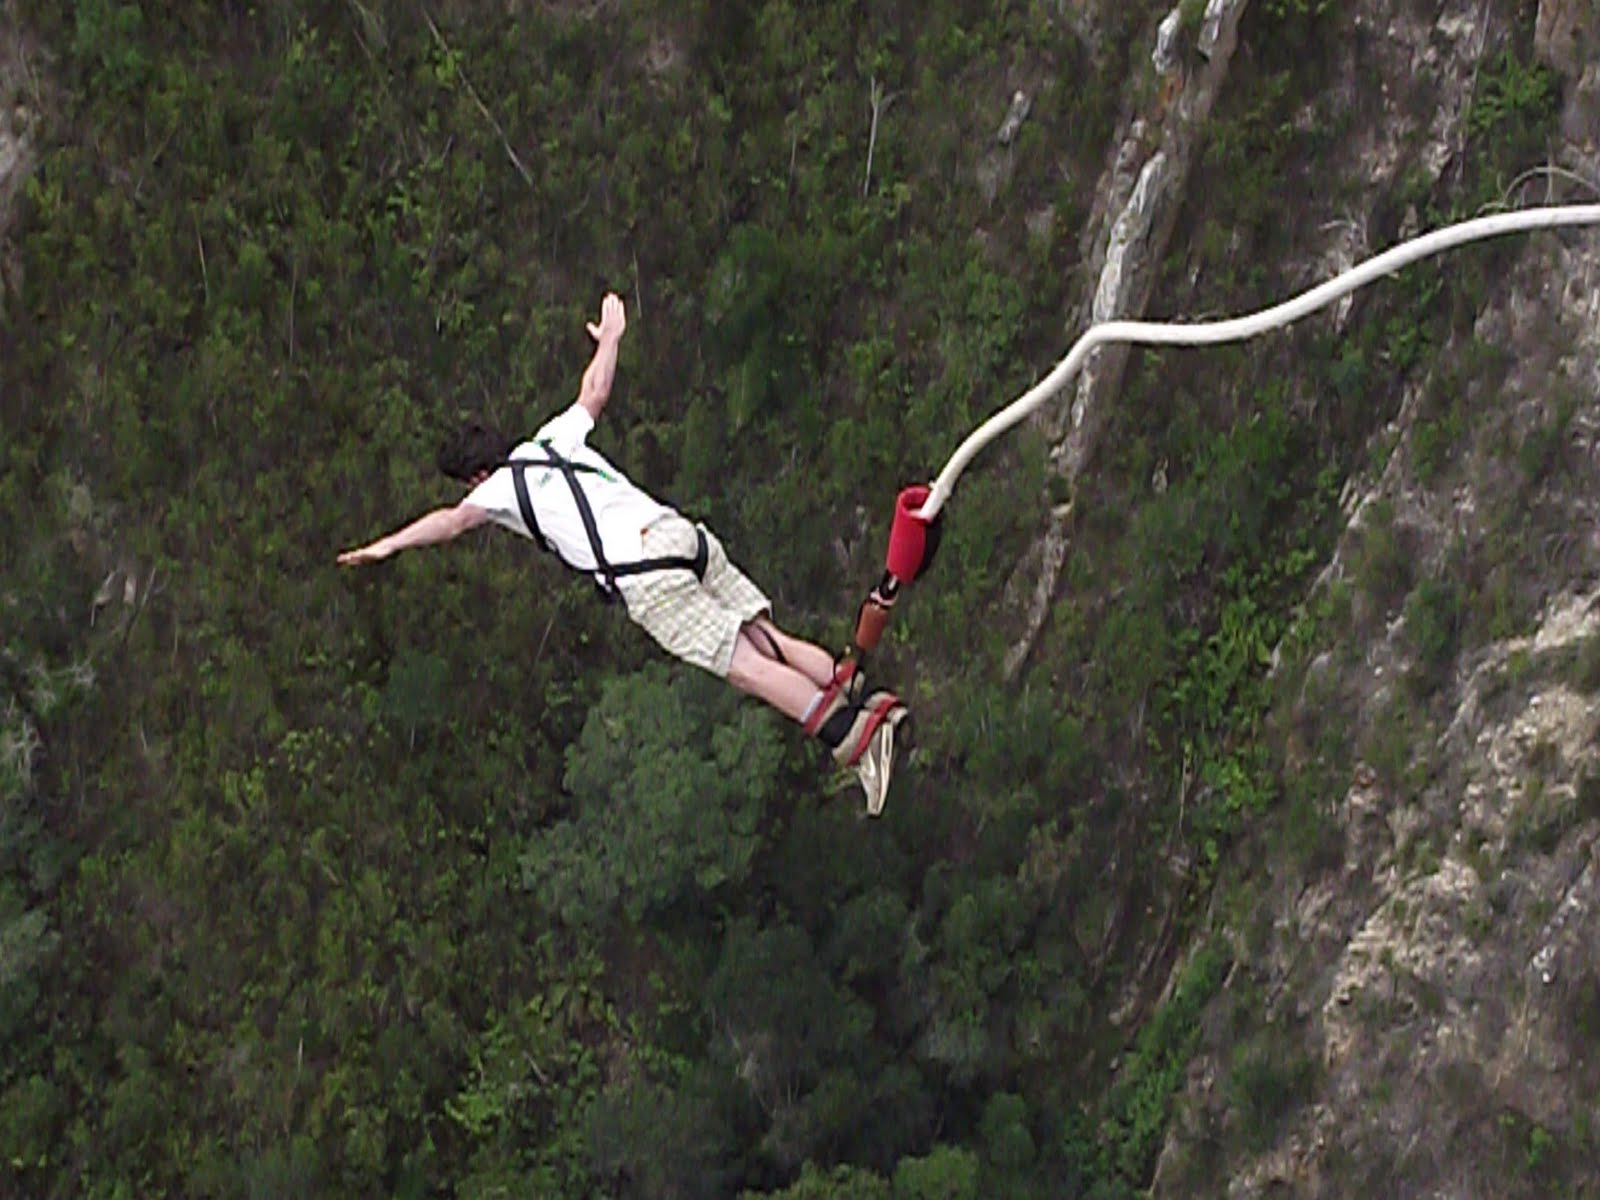 wisata indonesia Bungy Jumping